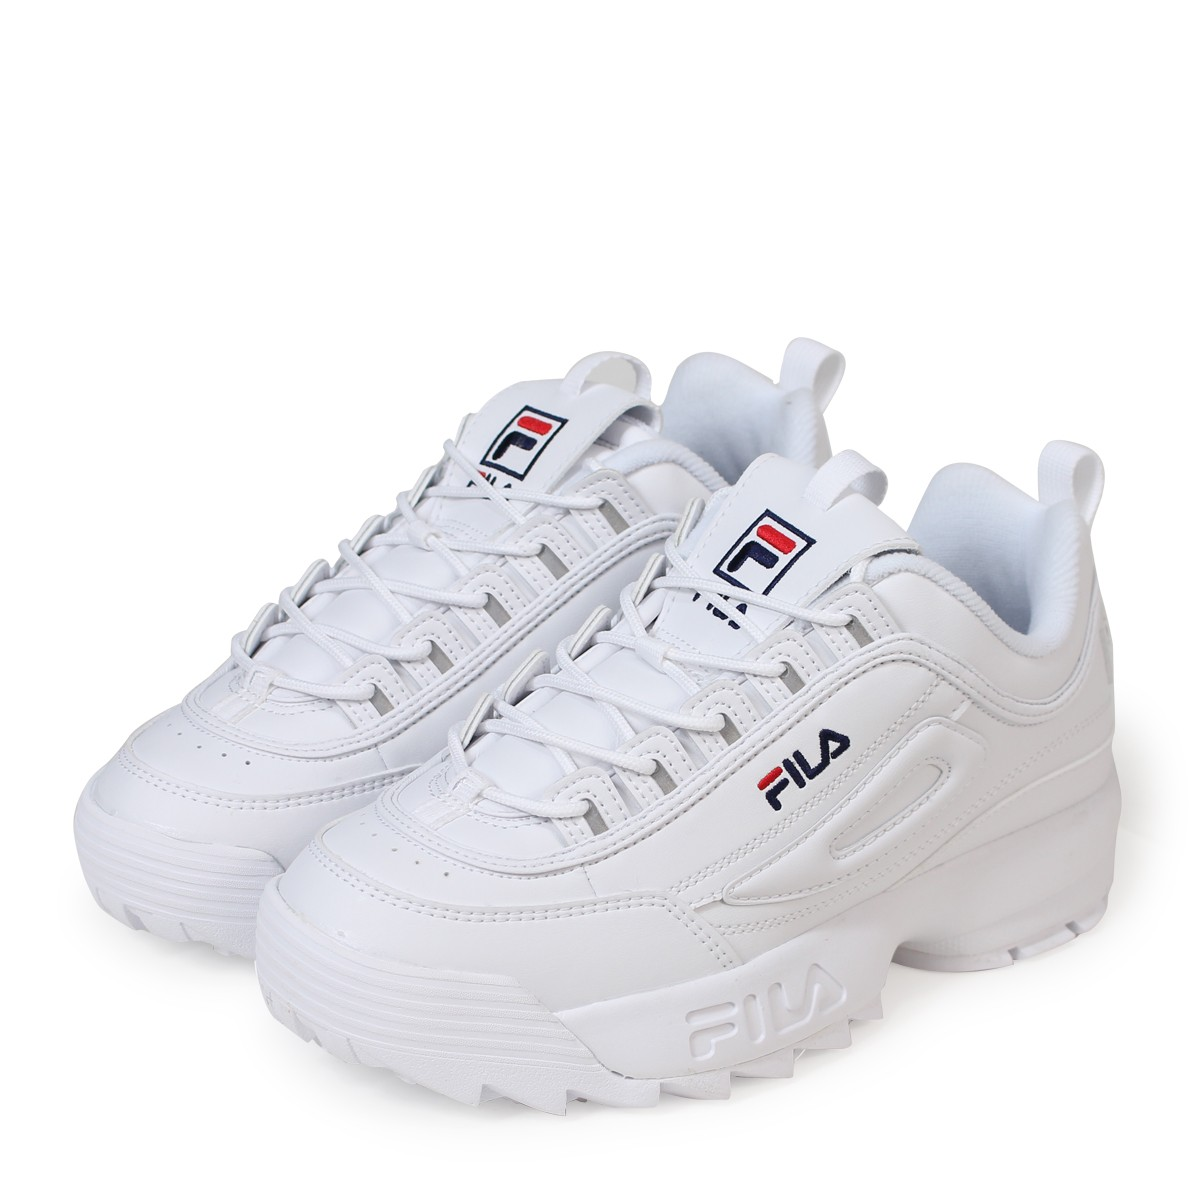 Fila Disruptor II  For Women  -White